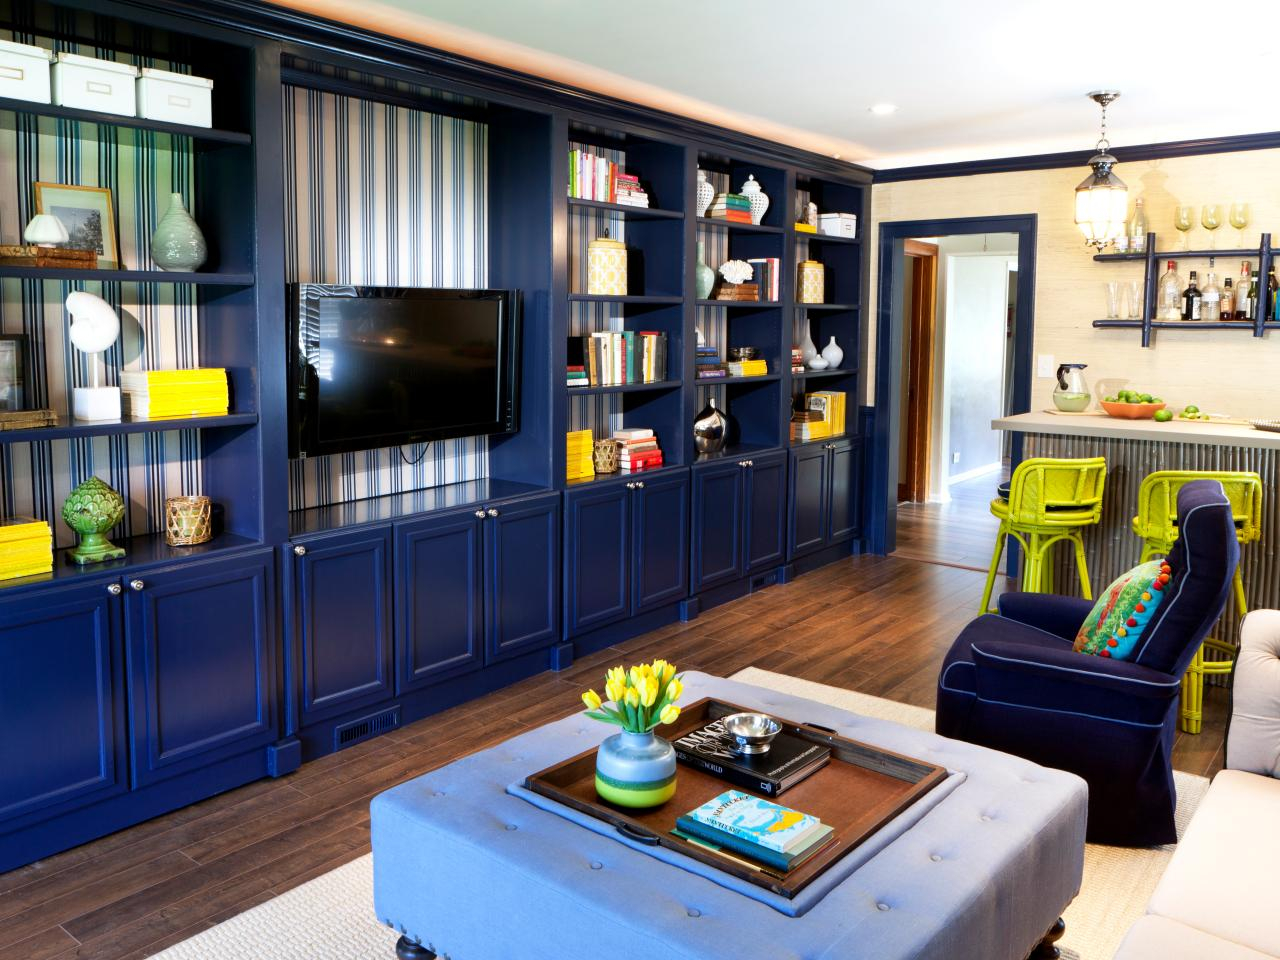 Fabulous Living Room Built-In Shelves | Hgtv intended for Unique Built In Cabinets Living Room